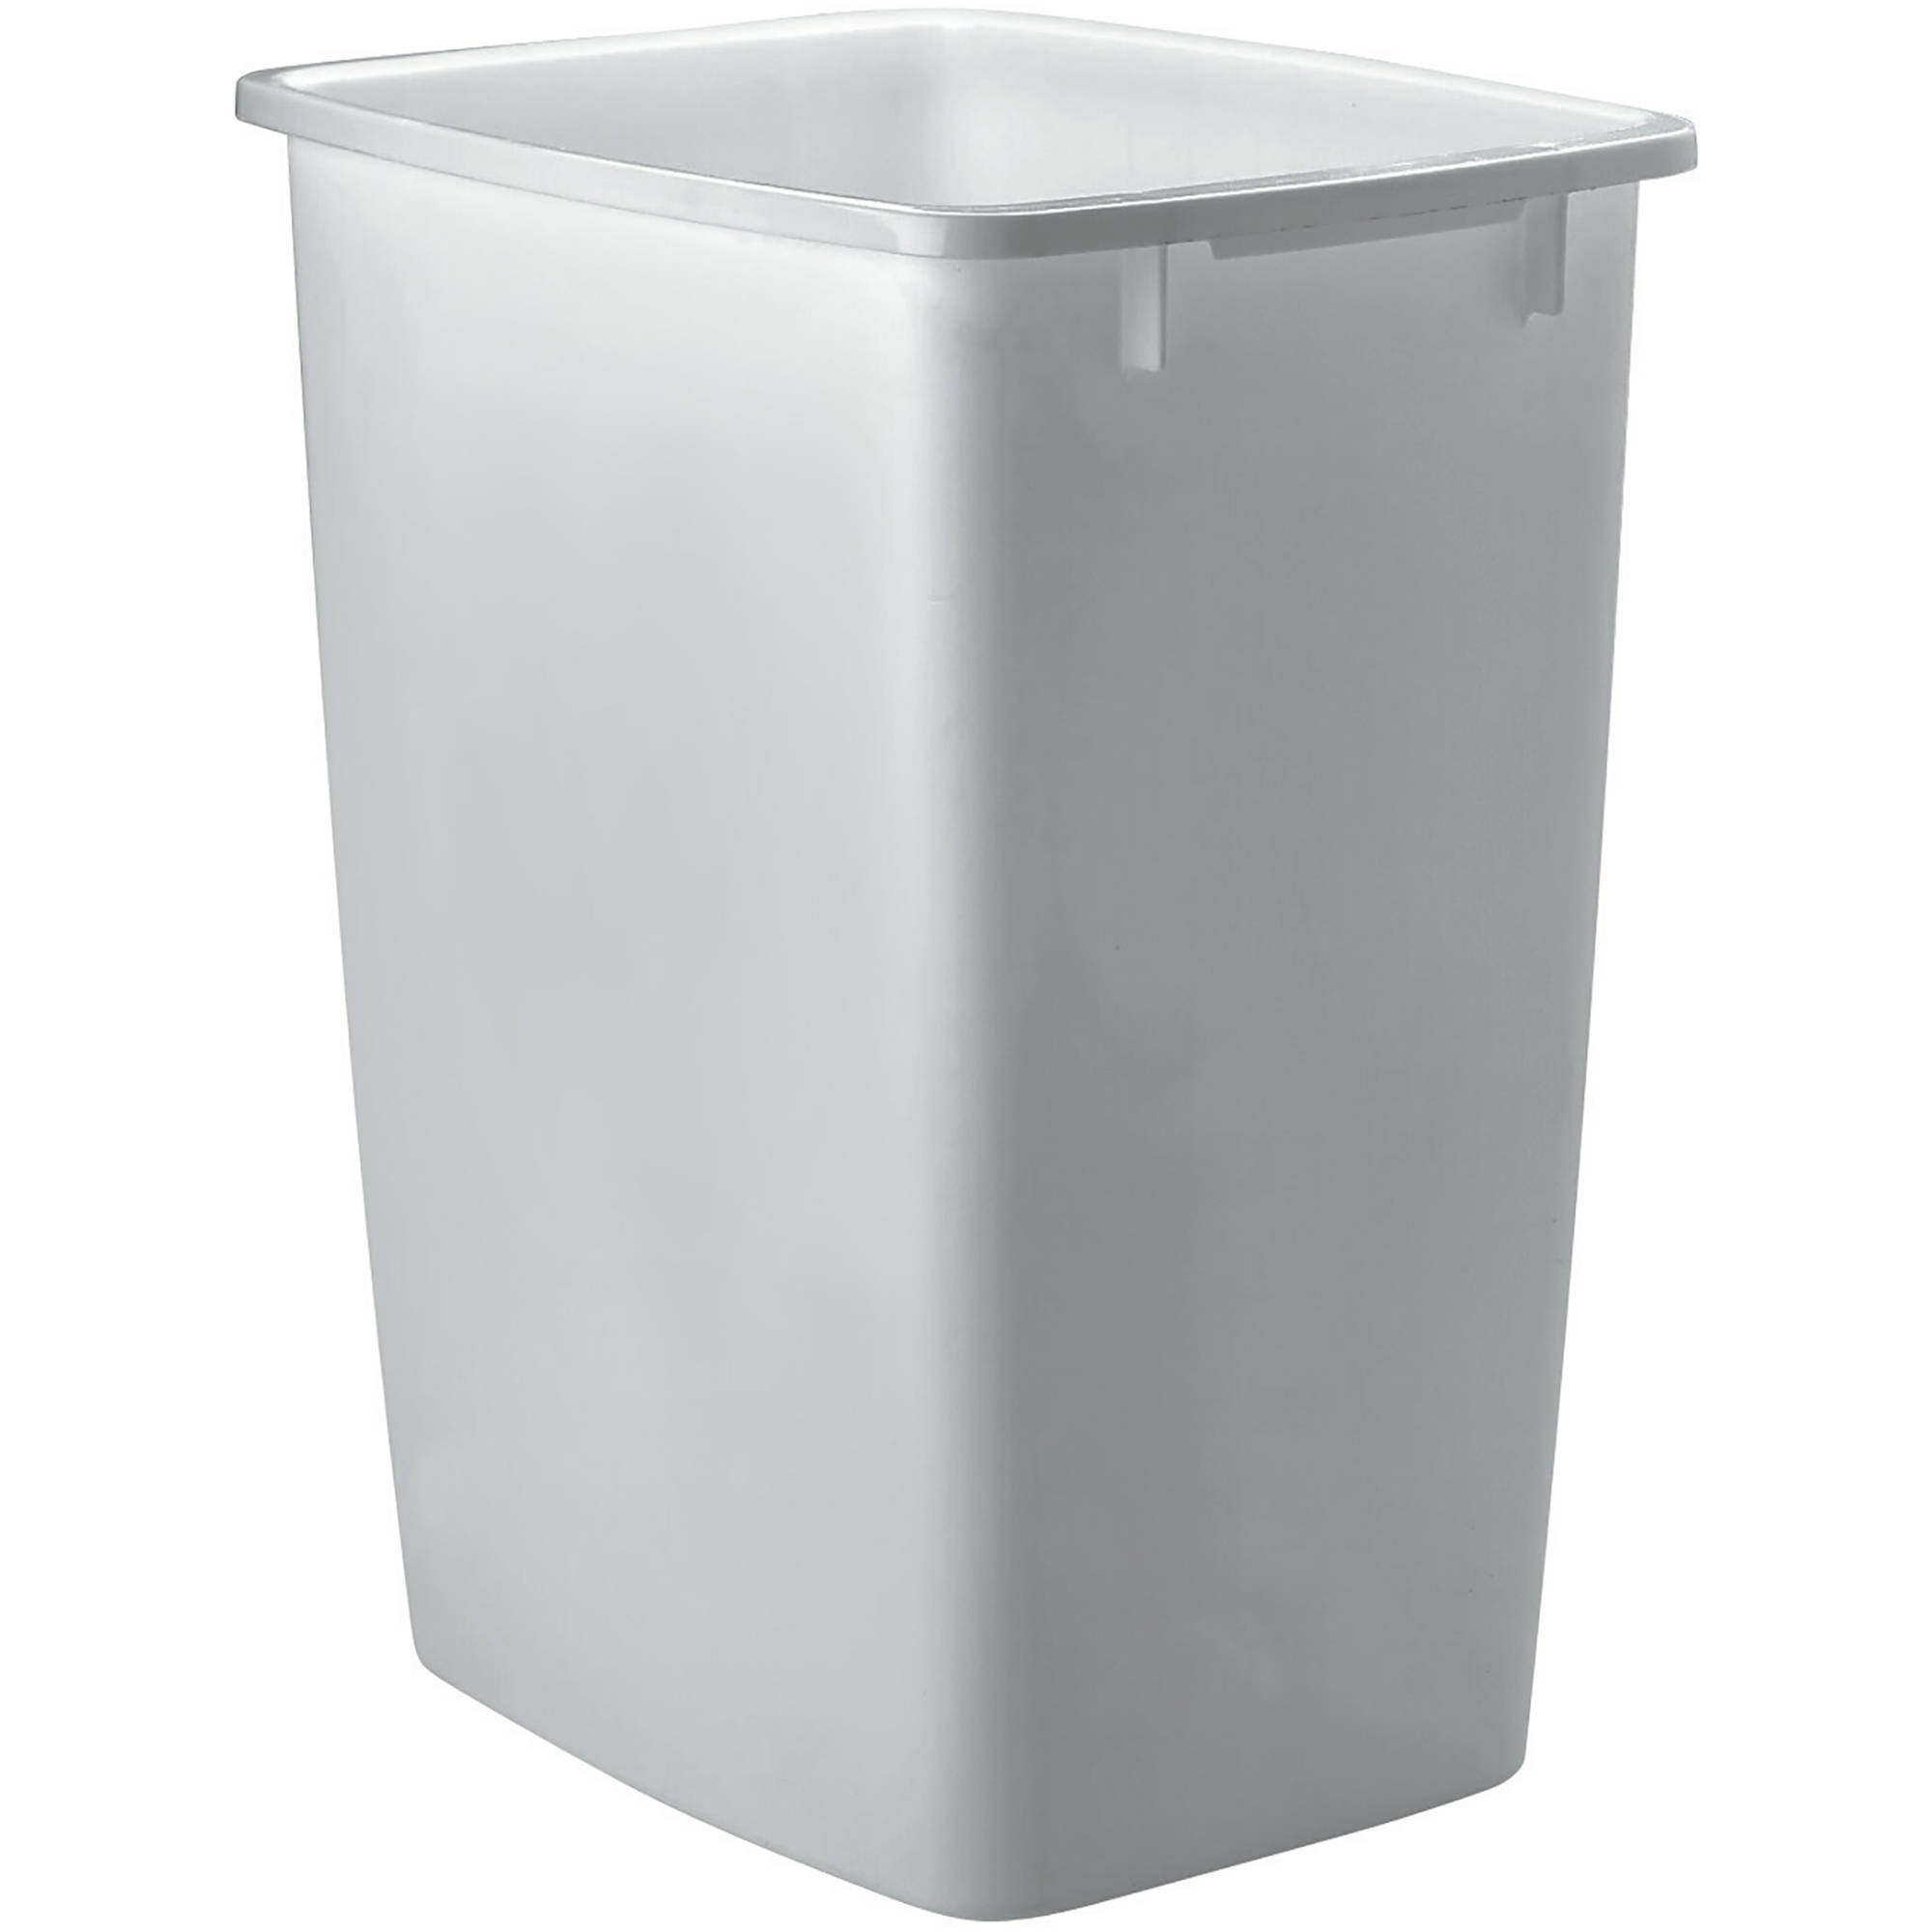 Awesome Rubbermaid Wastebasket, 9 Gal, White   Walmart.com